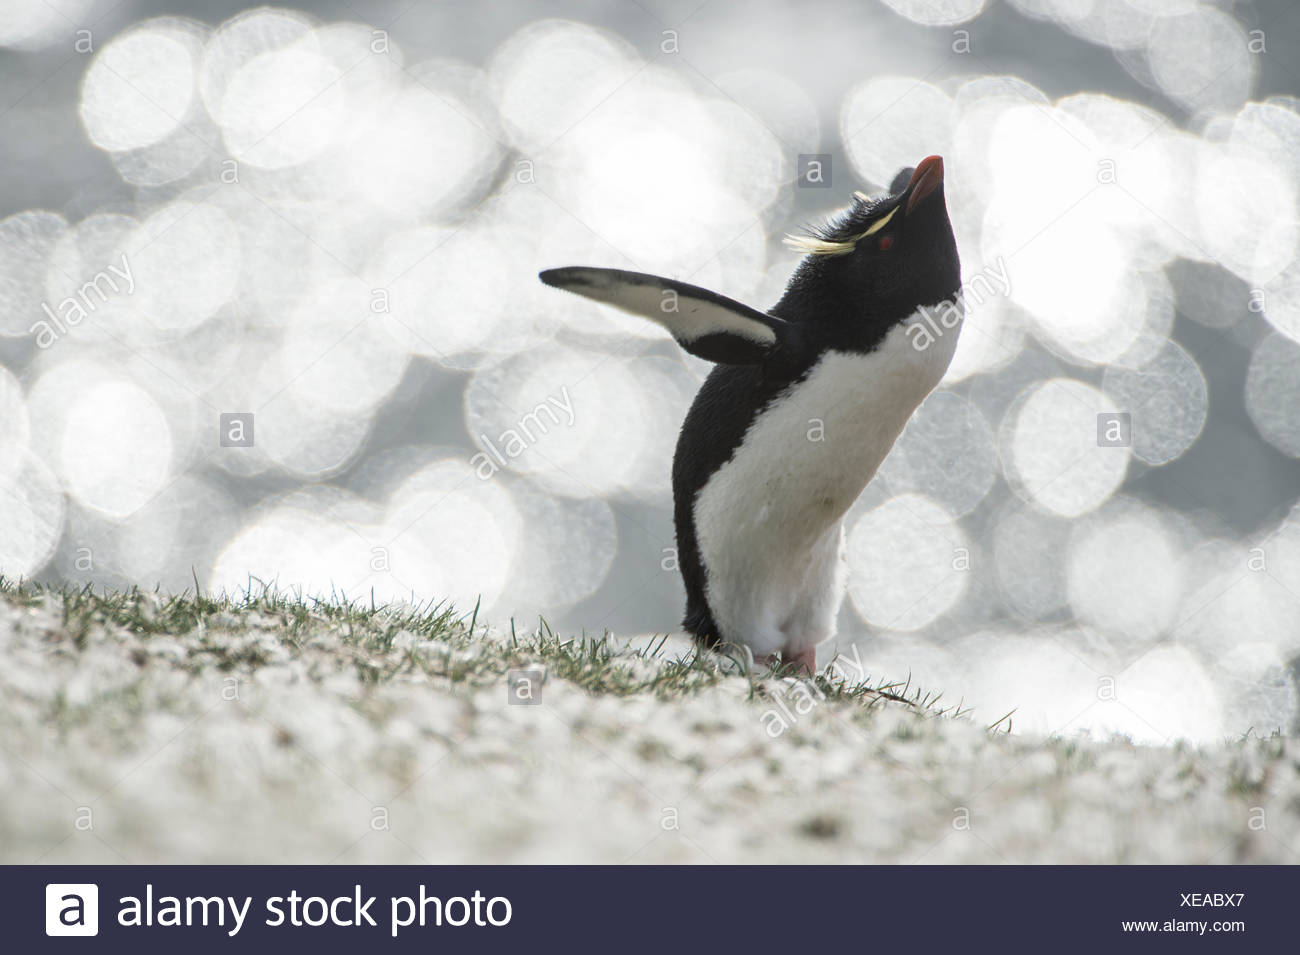 A rockhopper penguin, Eudyptes chrysocome, in front of glistening sea. - Stock Image